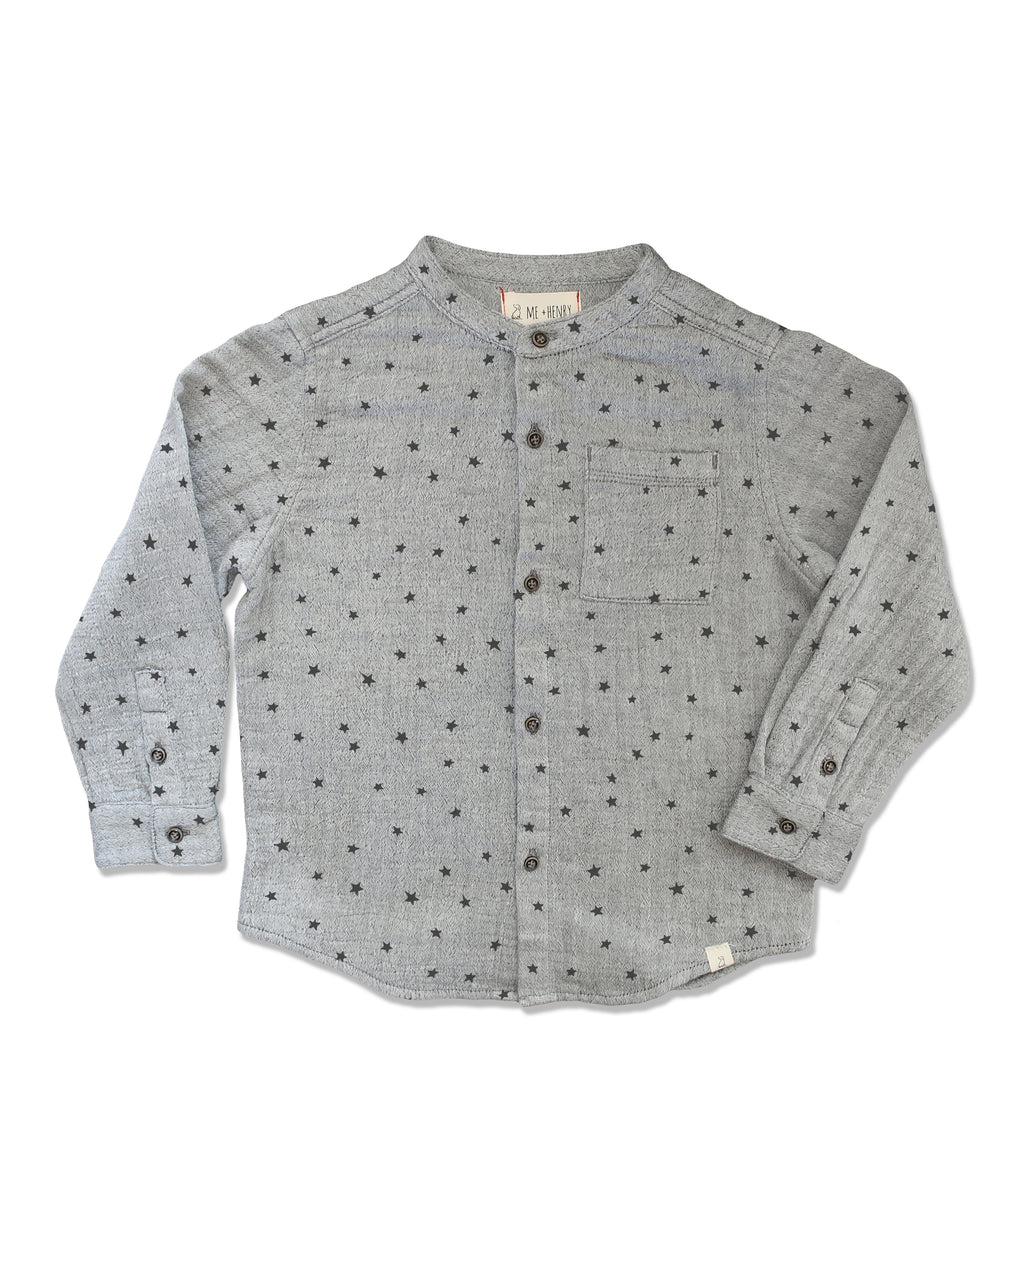 front image of round necked grey long sleeved shirt with black star print all over